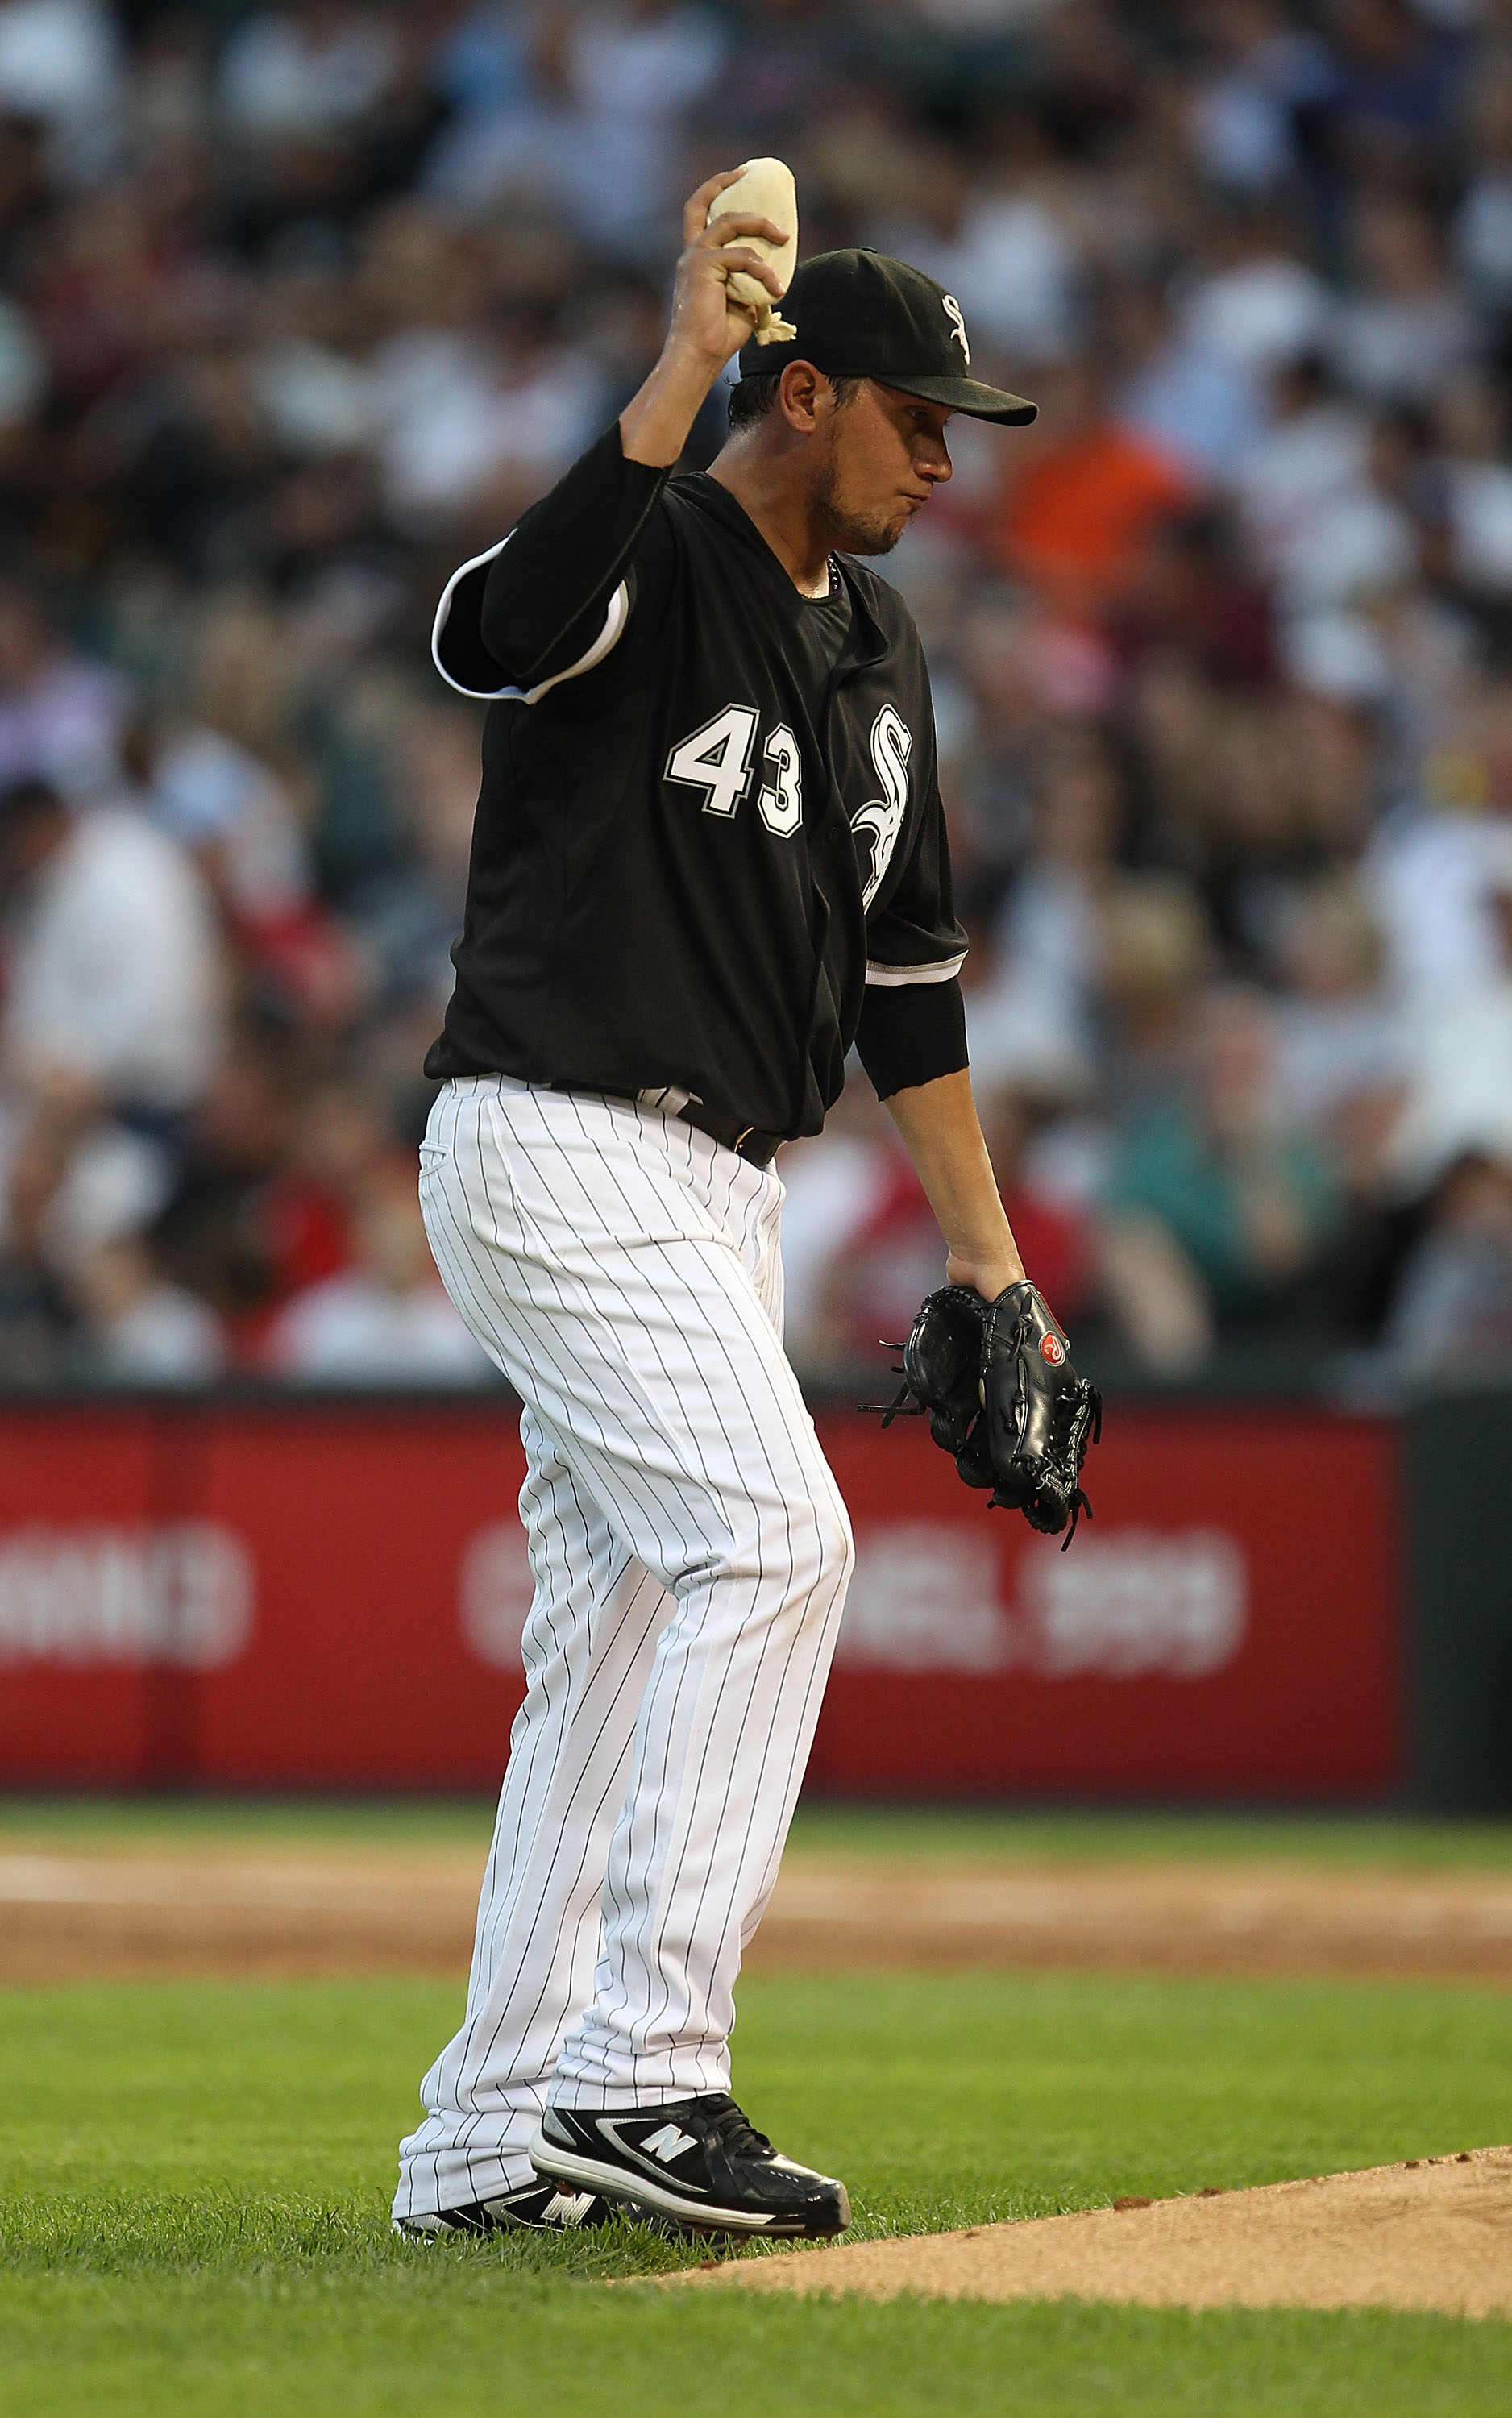 CHICAGO - AUGUST 10: Starting pitcher Freddy Garcia #43 of the Chicago White Sox reacts after giving up a home run to the Minnesota Twins in the 2nd inning at U.S. Cellular Field on August 10, 2010 in Chicago, Illinois. (Photo by Jonathan Daniel/Getty Ima